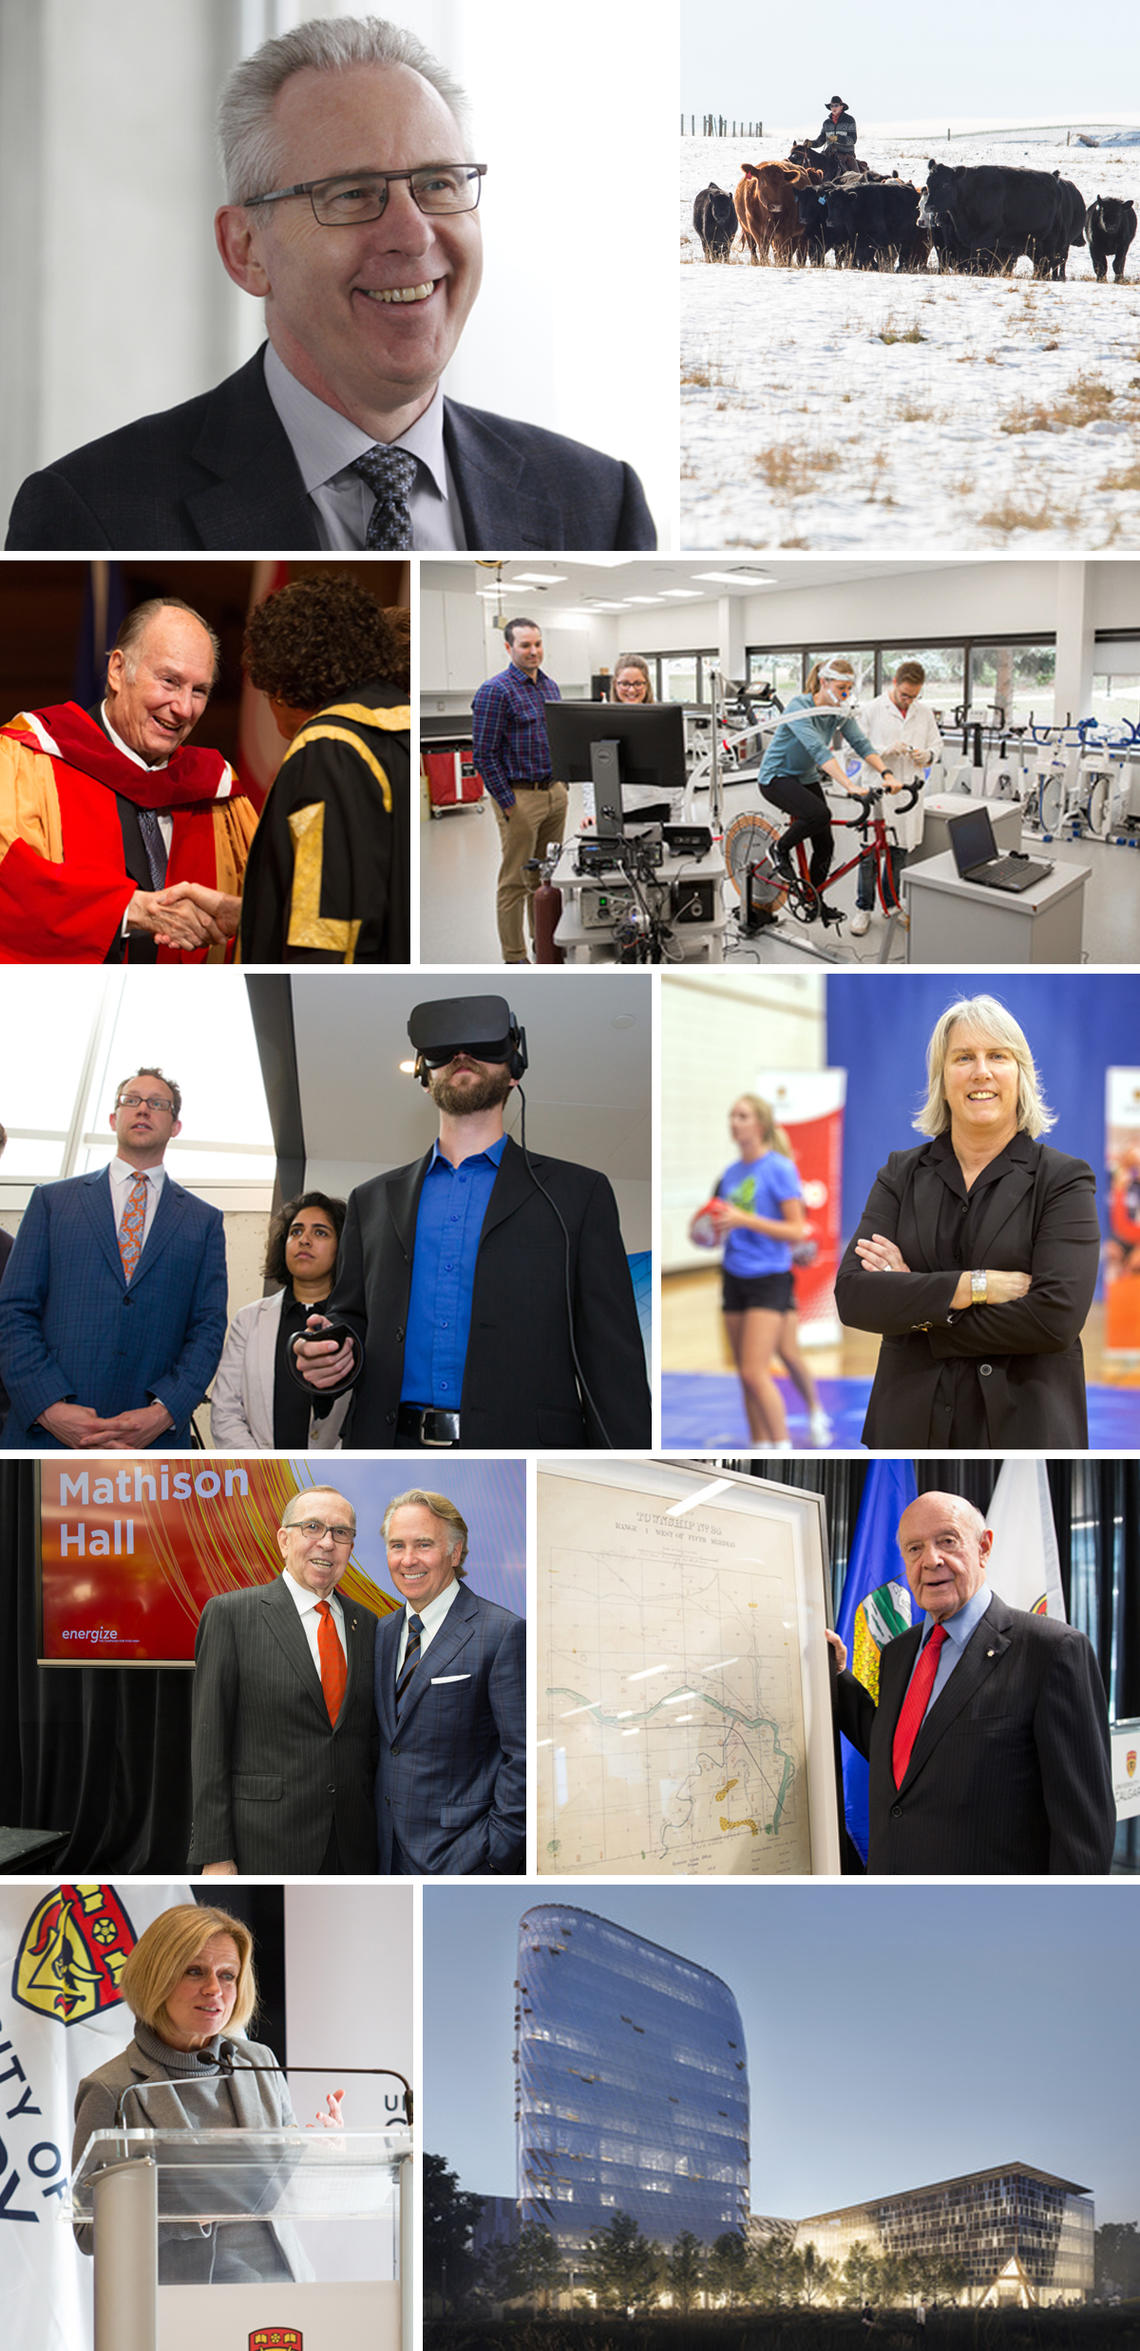 Clockwise from top left: Ed McCauley, ninth president of the University of Calgary; Anderson-Chisholm family gifts a working ranch to the Faculty of Veterinary Medicine; Faculty of Kinesiology ranks No. 1 among North American sport science schools; Carolyn Emery will lead a concussion research program at Canadian high schools; donation from Bill Siebens and family supports the historic relocation of the Glenbow Library and Archives to the university; construction begins on the MacKimmie redevelopment; Premi